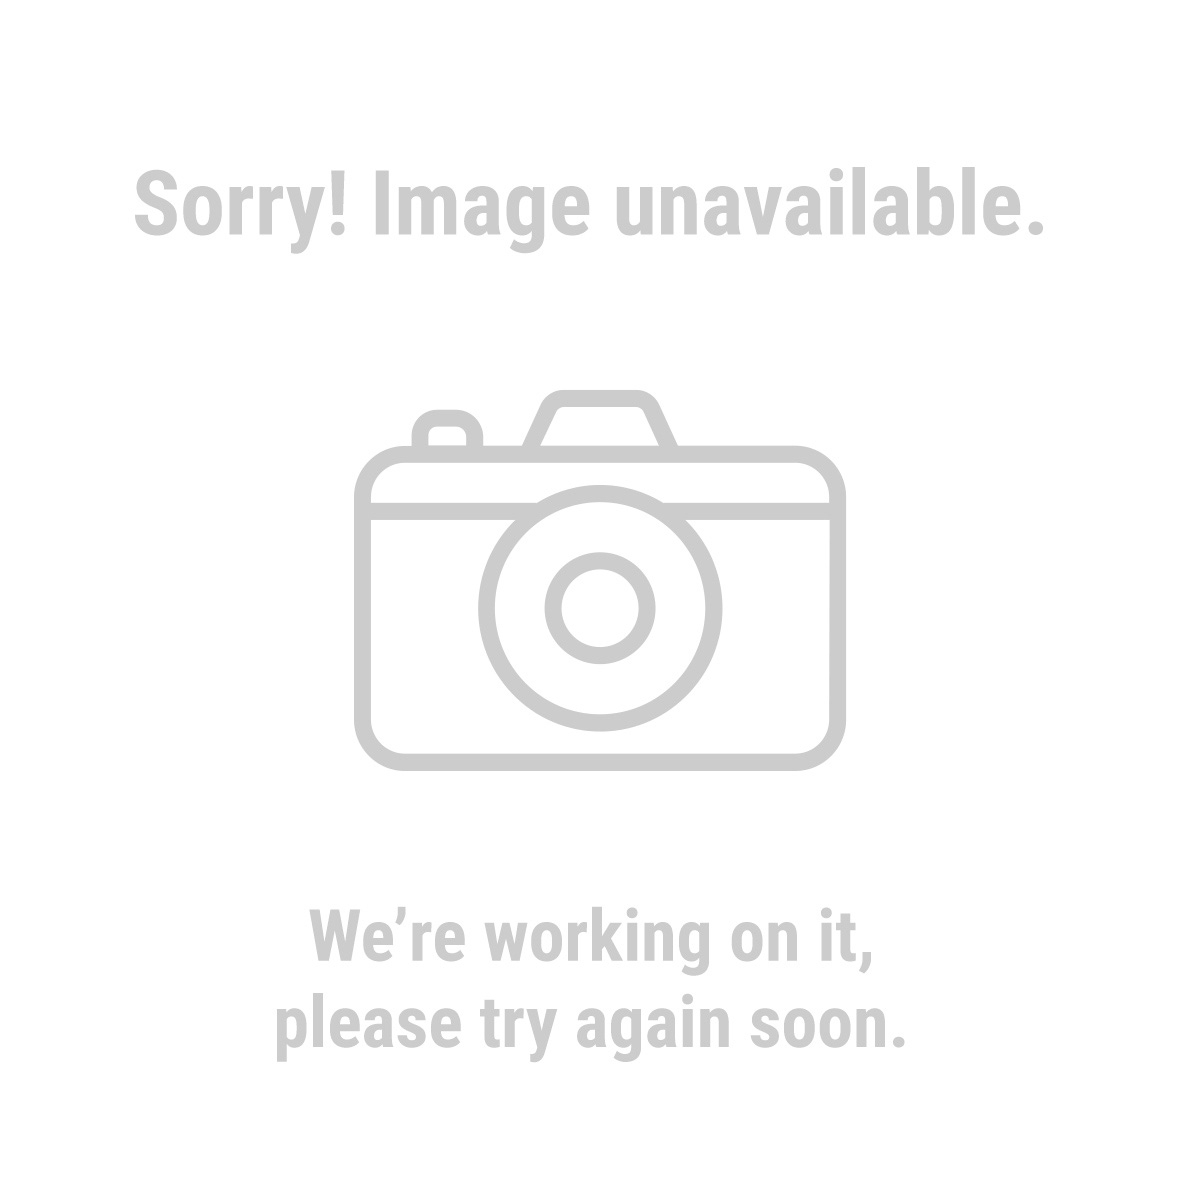 6000 lb. Off-Road Vehicle Winch with Automatic Load-Holding Brake